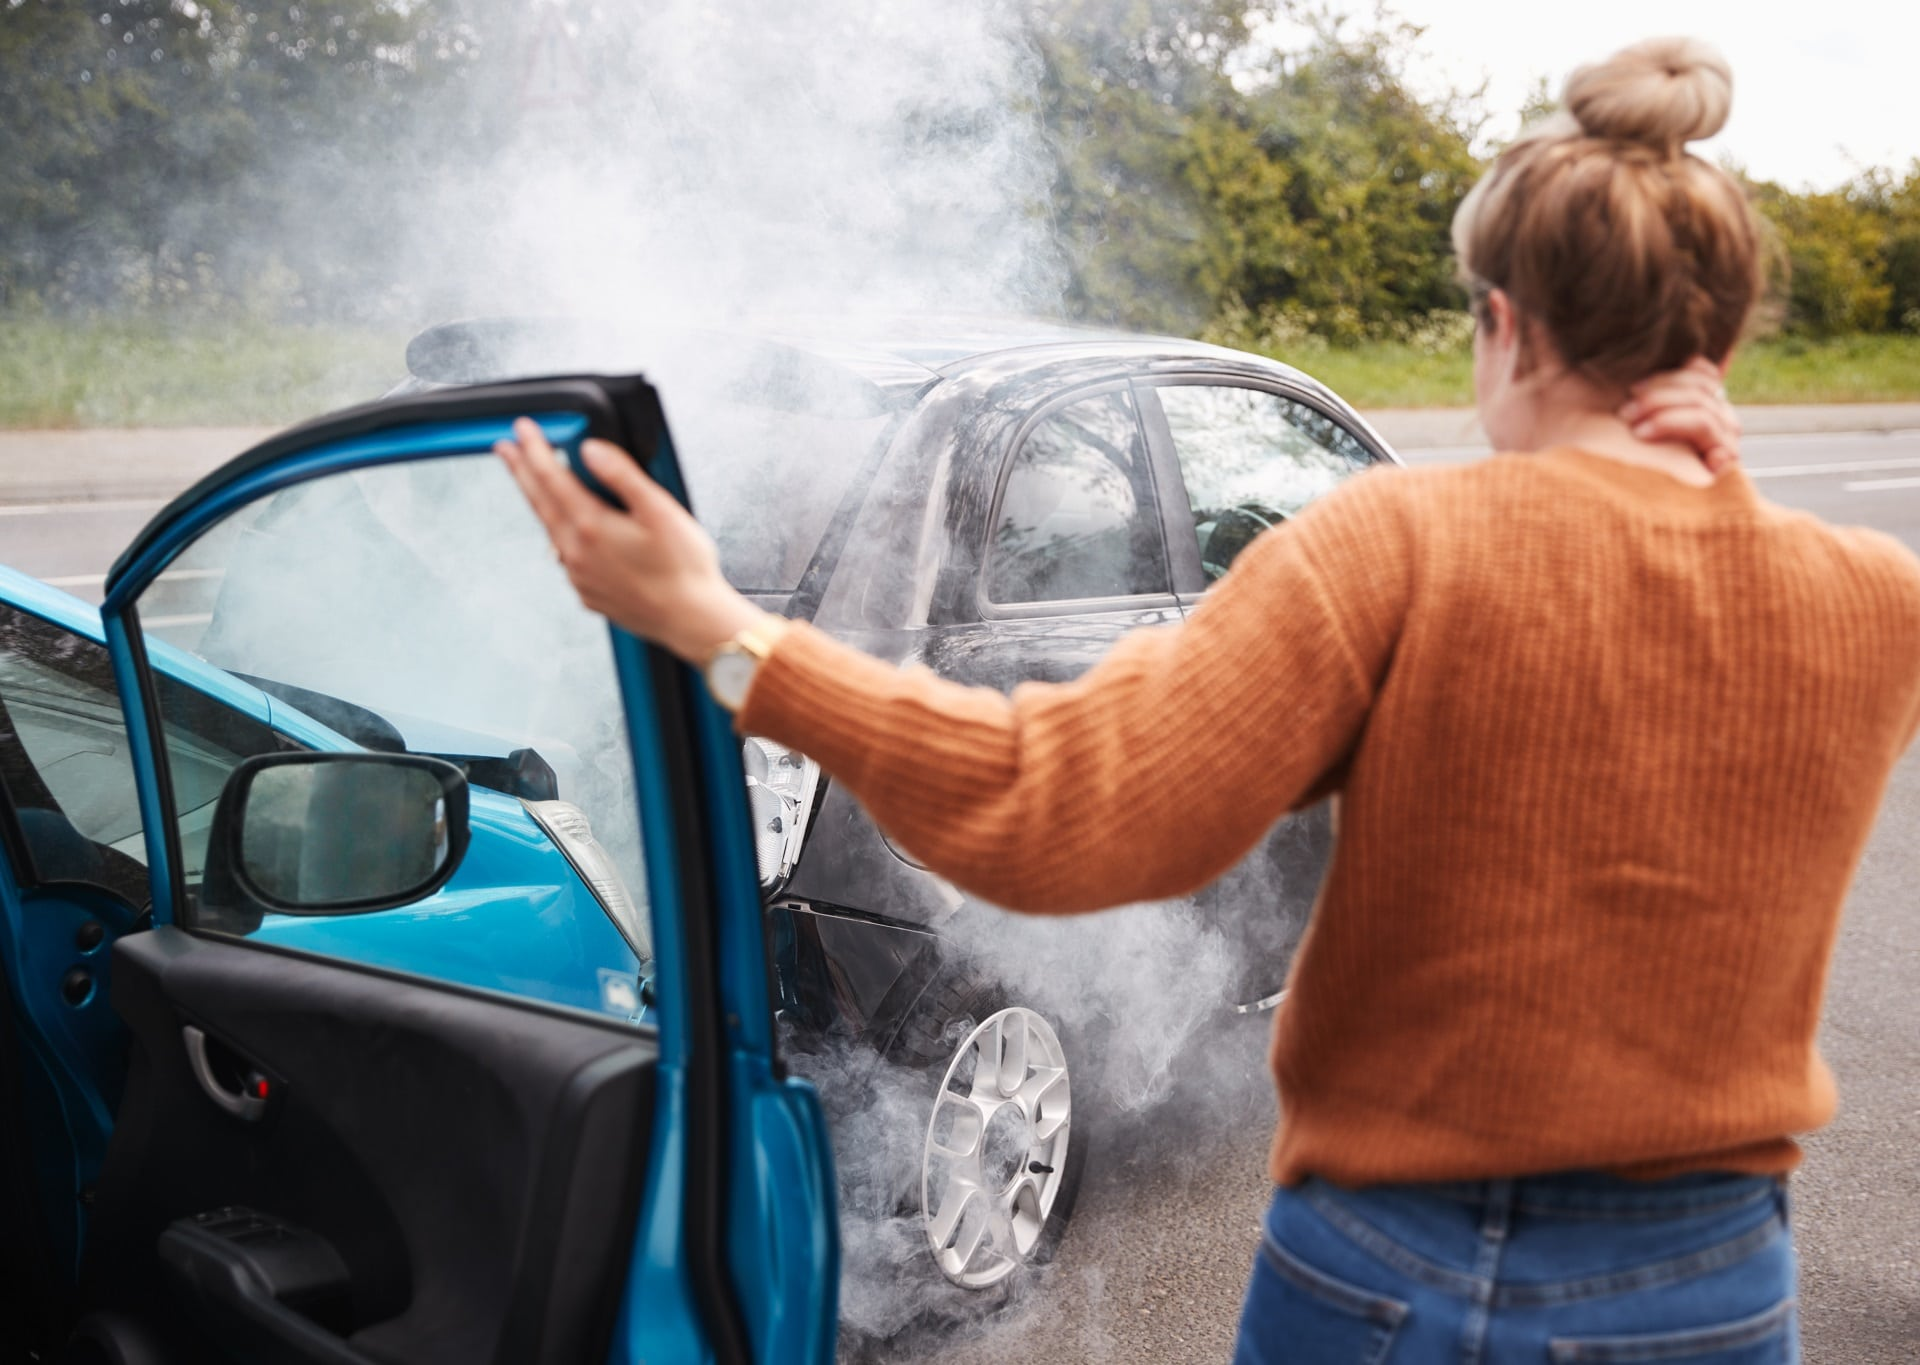 Smoking rear-ended car accident with woman at one car door, holding her neck